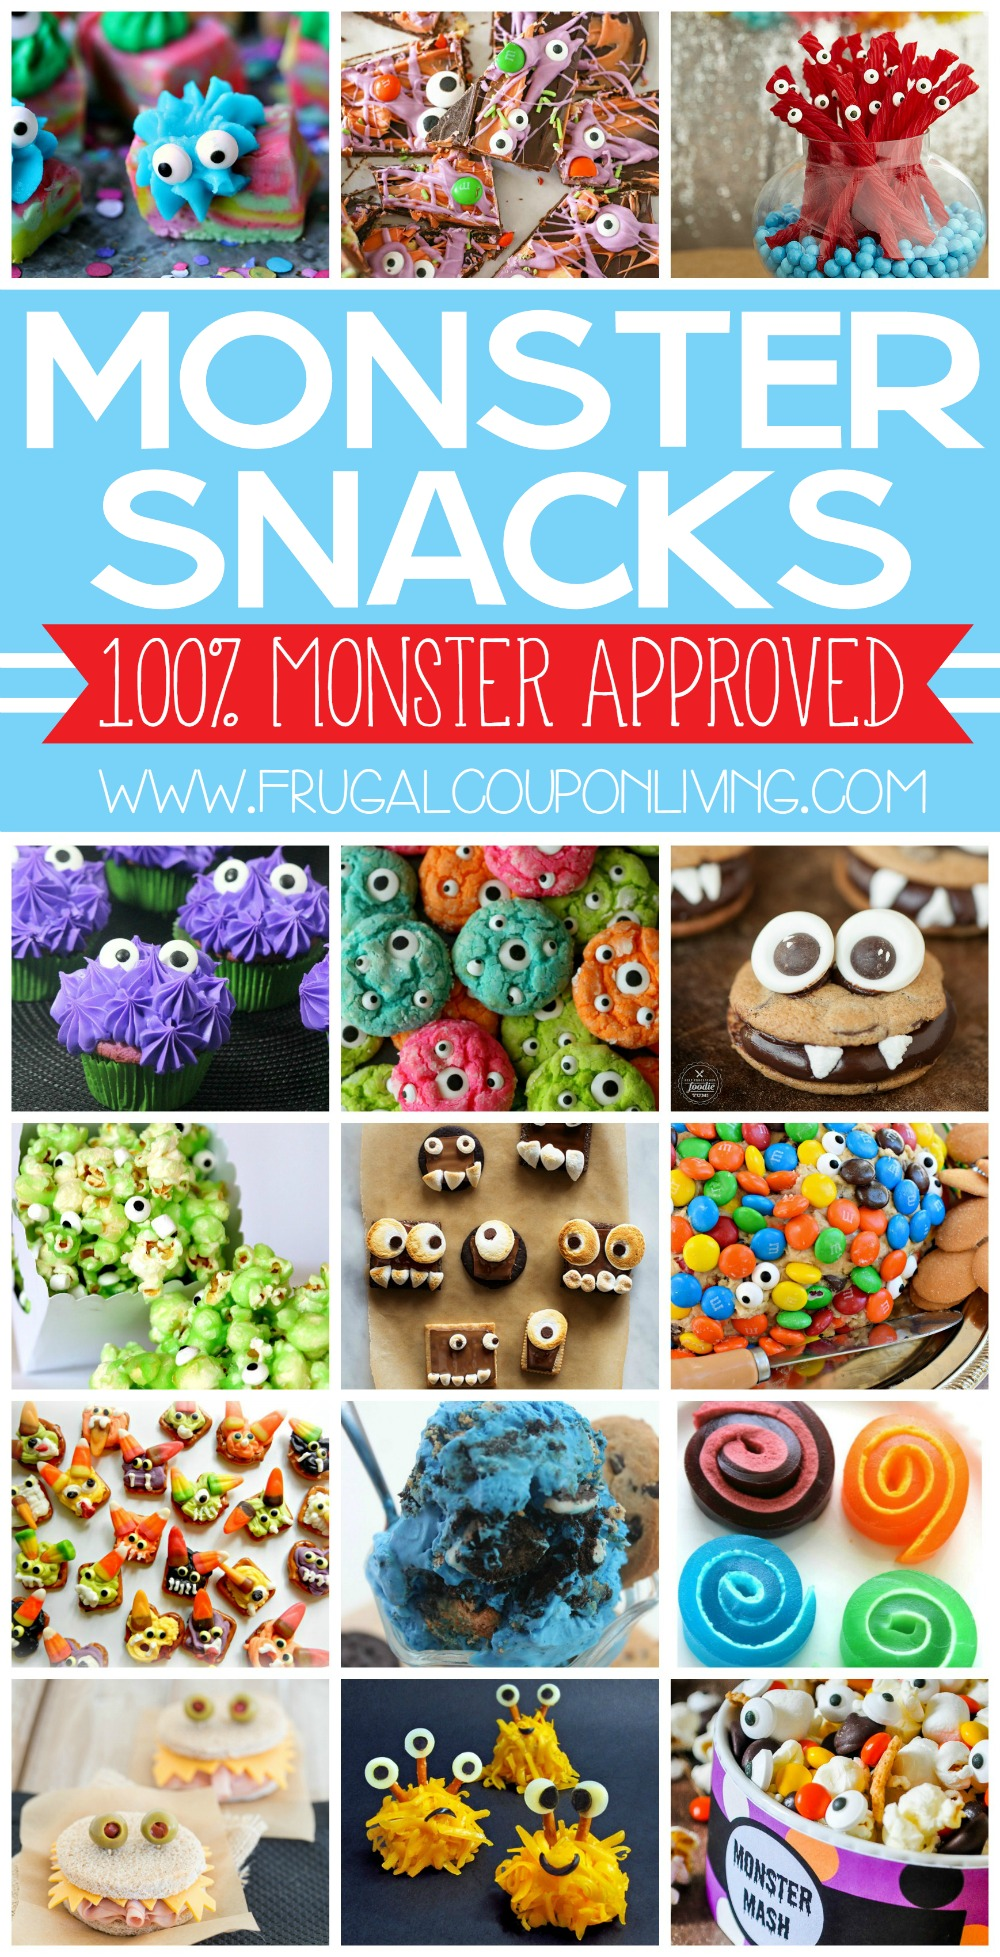 Monster-snacks-frugal-coupon-living